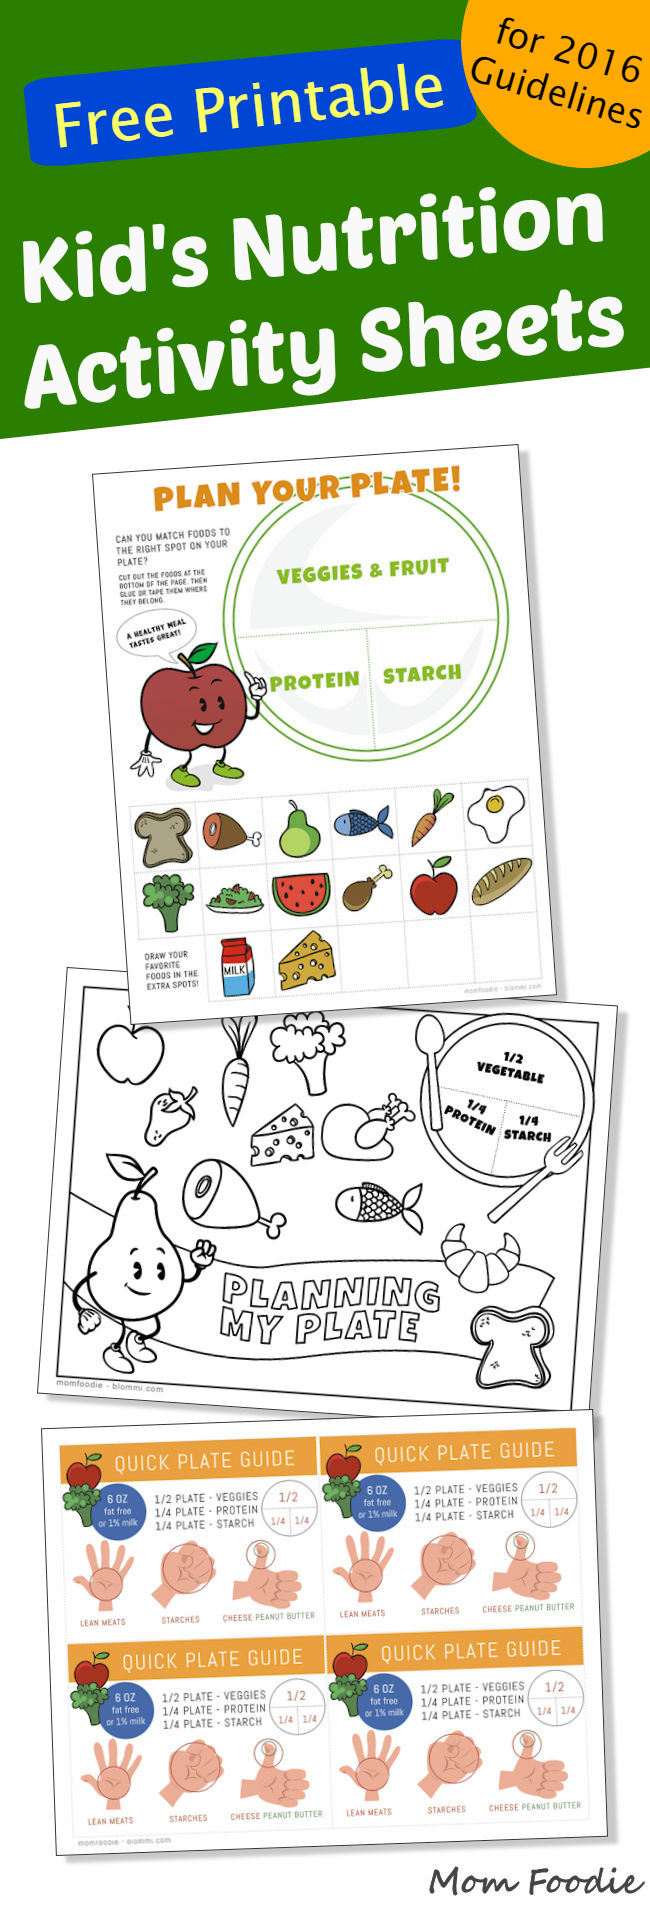 Printable Nutrition Activities for Kids - Mom Foodie